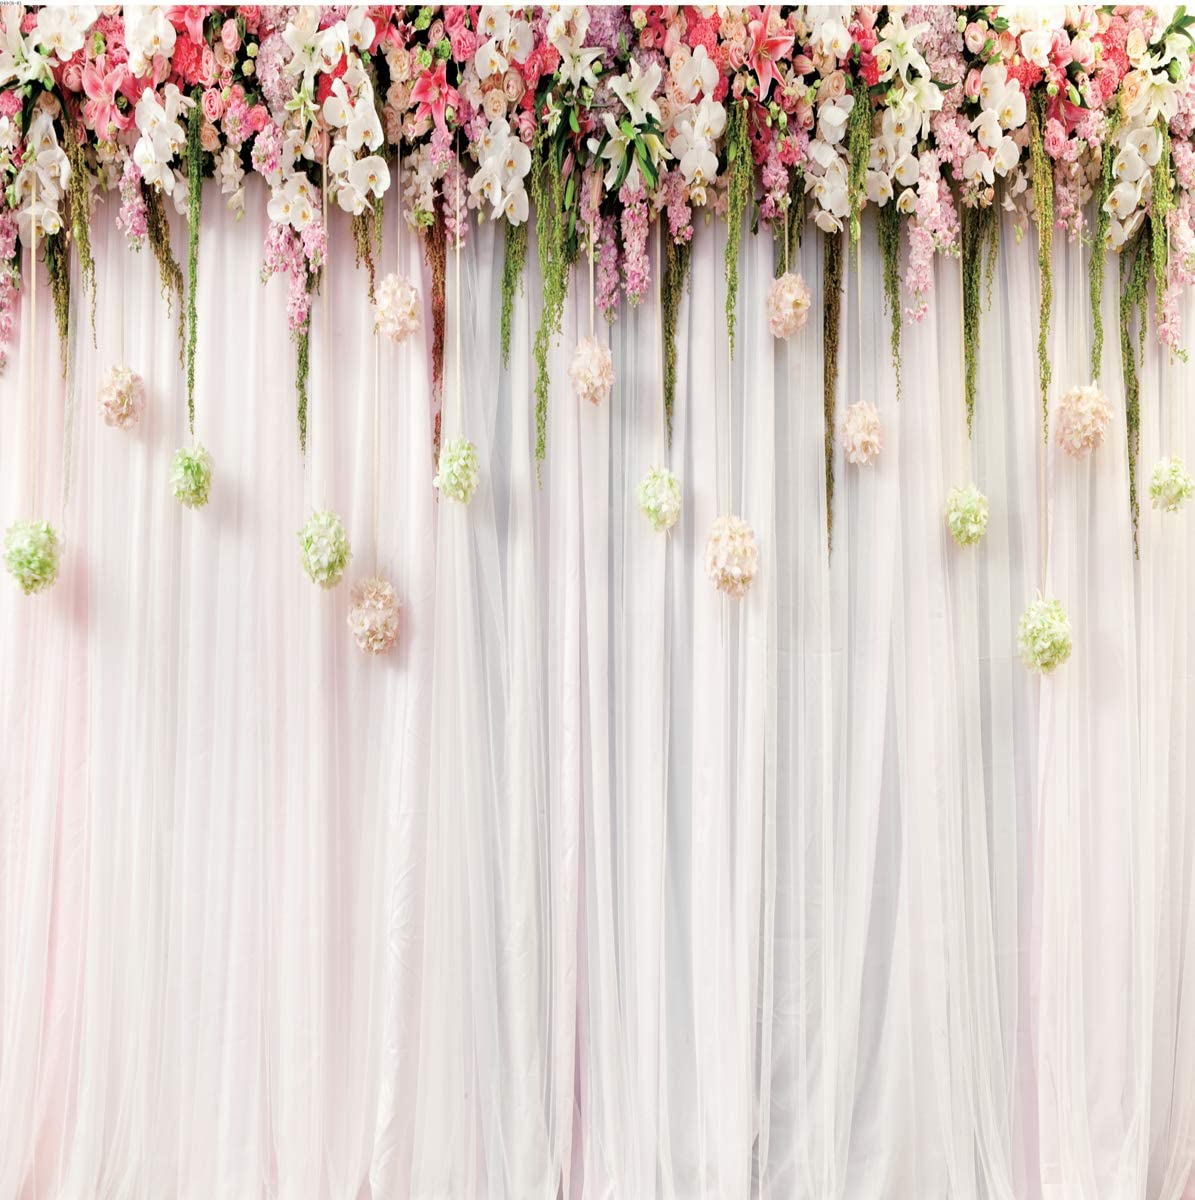 8x8FT Vinyl Wall Photography Backdrop,Colorful,Modern Graphic Ornament Background for Baby Birthday Party Wedding Studio Props Photography